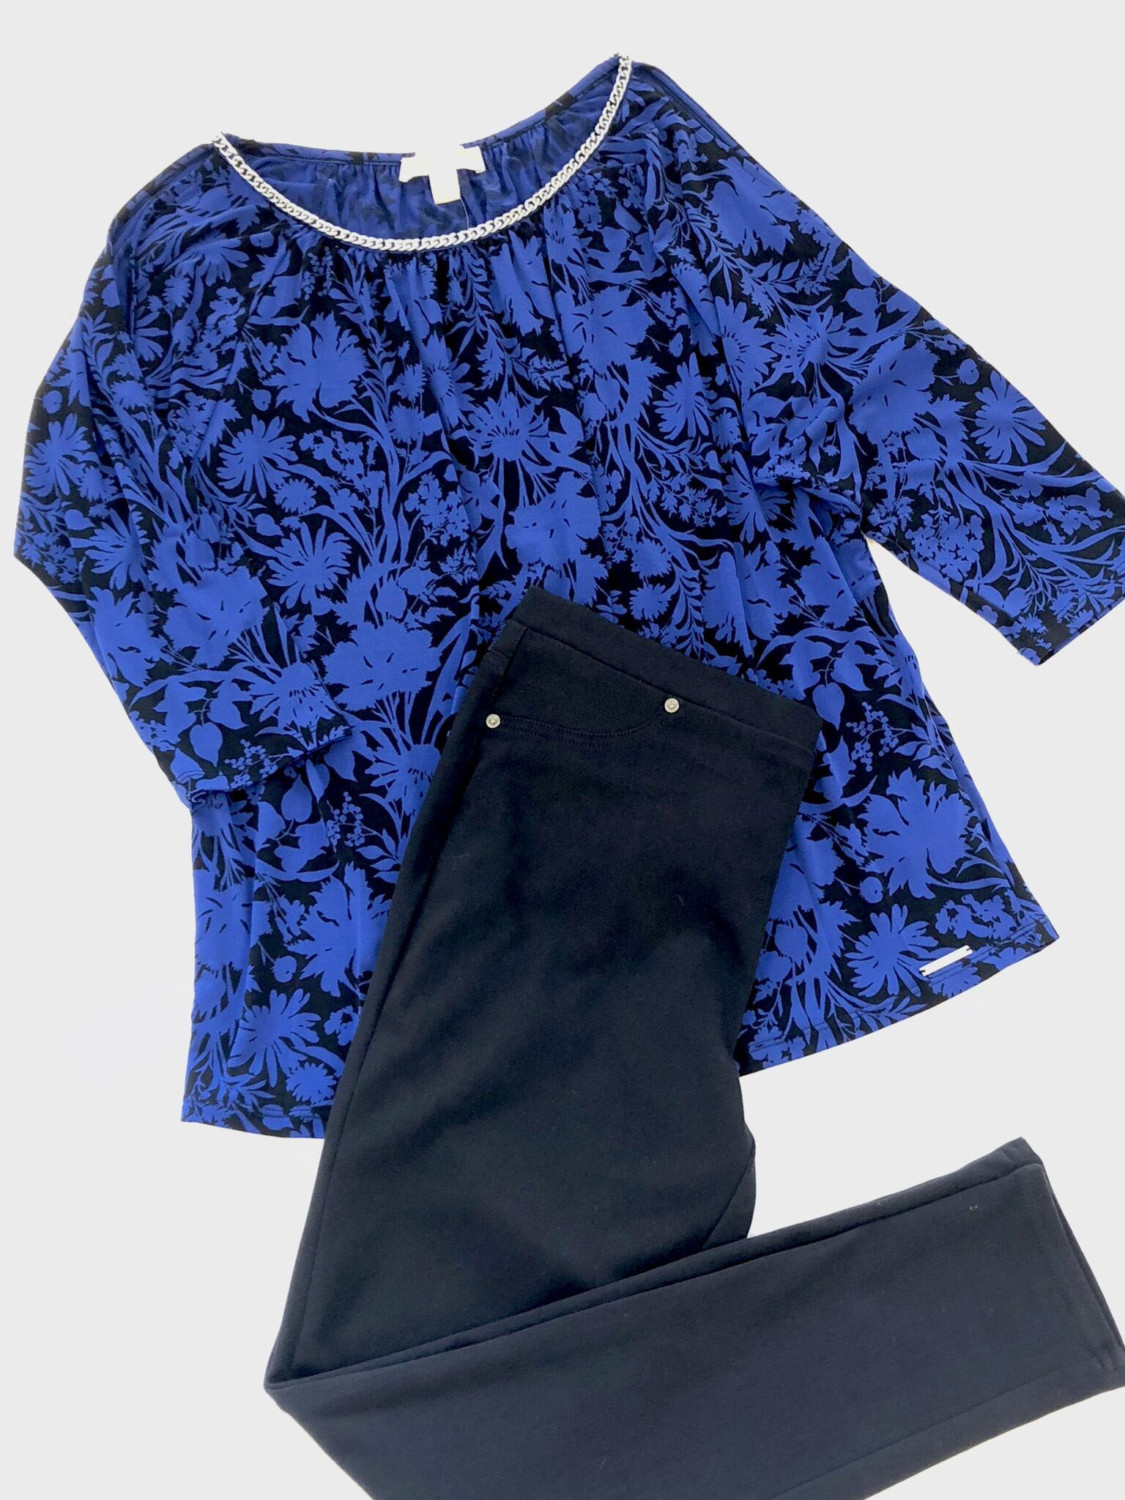 Michael Kors Top, Style & Co Pants – Original Retail: $130, CWS: $32